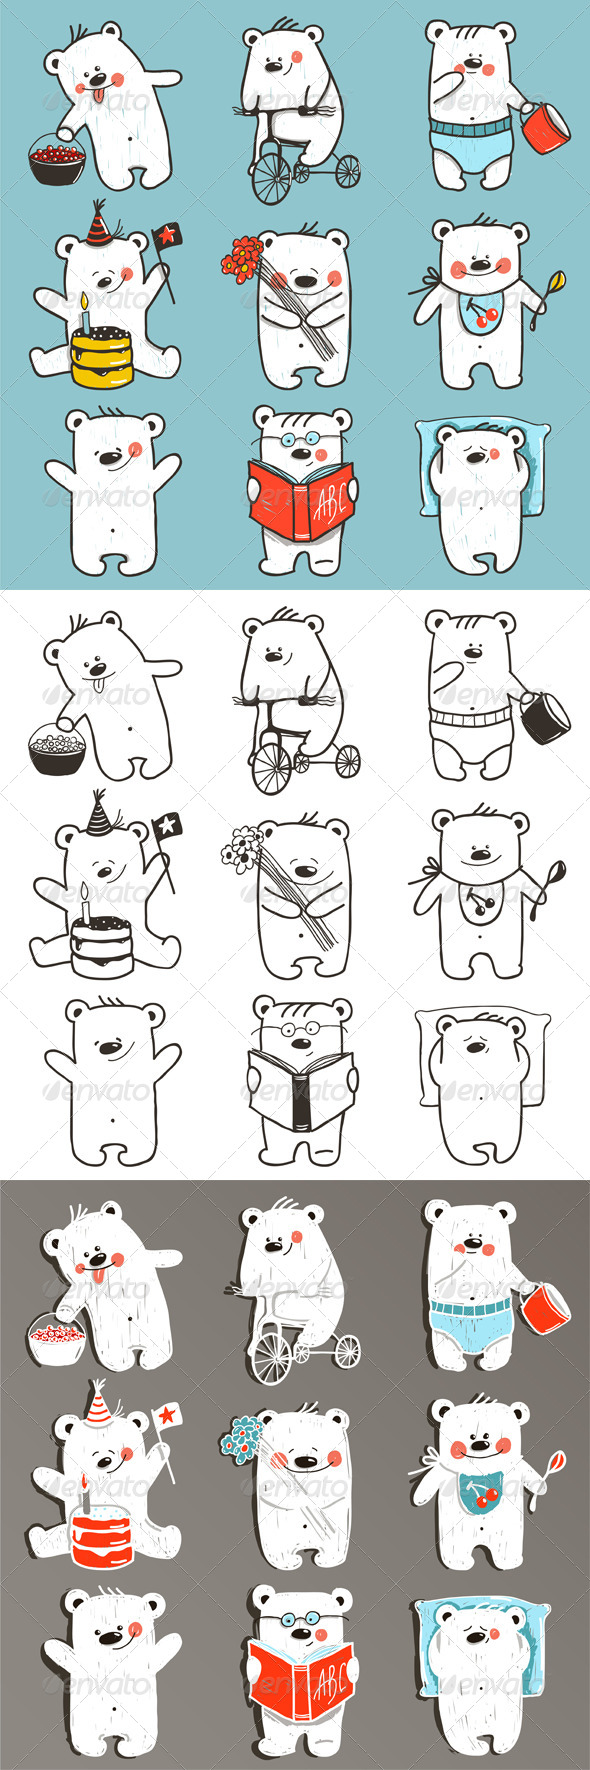 GraphicRiver Cartoon Baby Bears in Action Collection 8732832